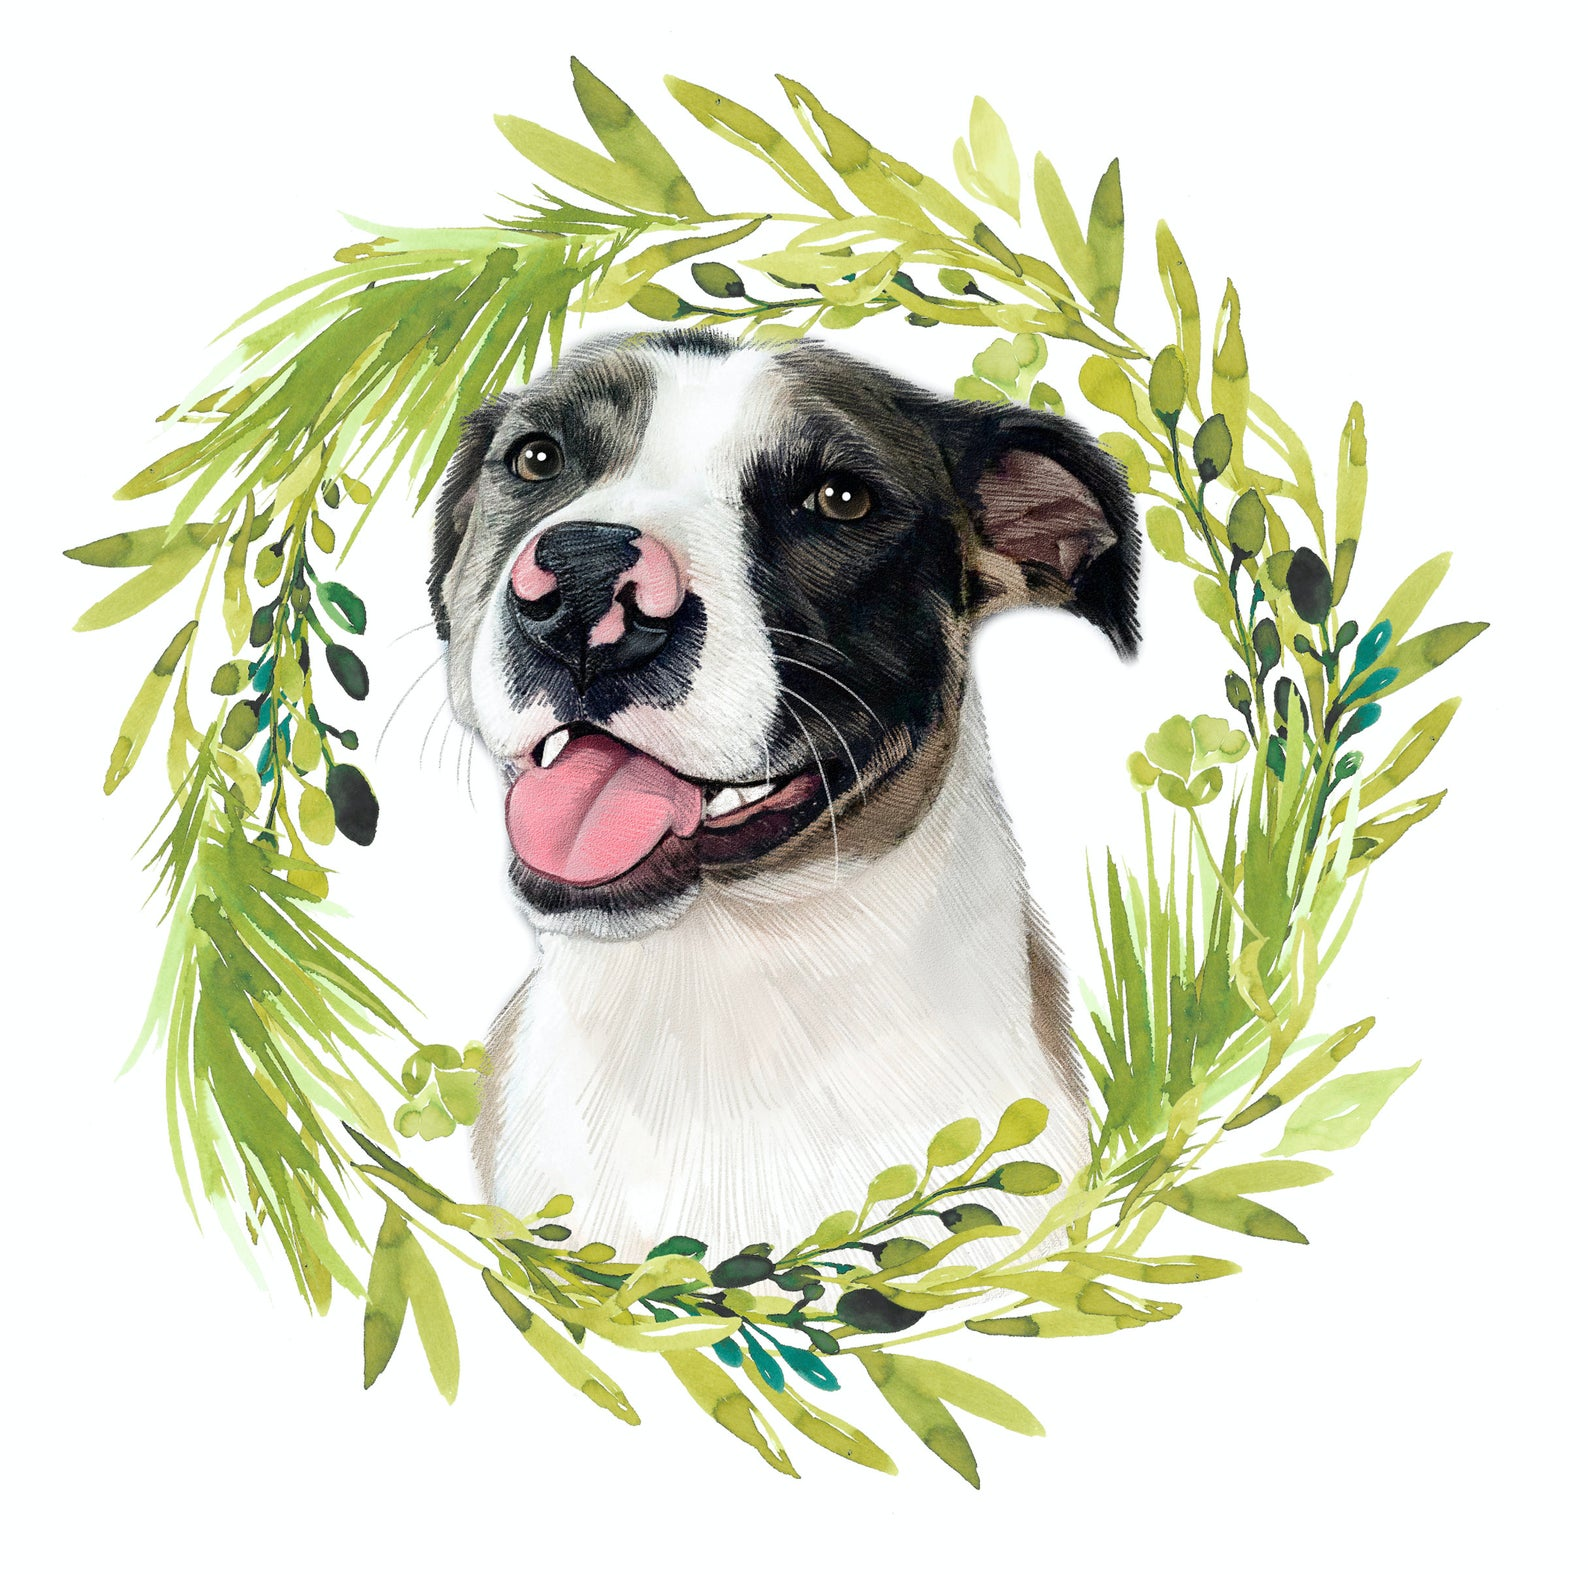 A piece of digital art in colored pencil style that features a smiling bully breed dog framed by a circle of greenery.